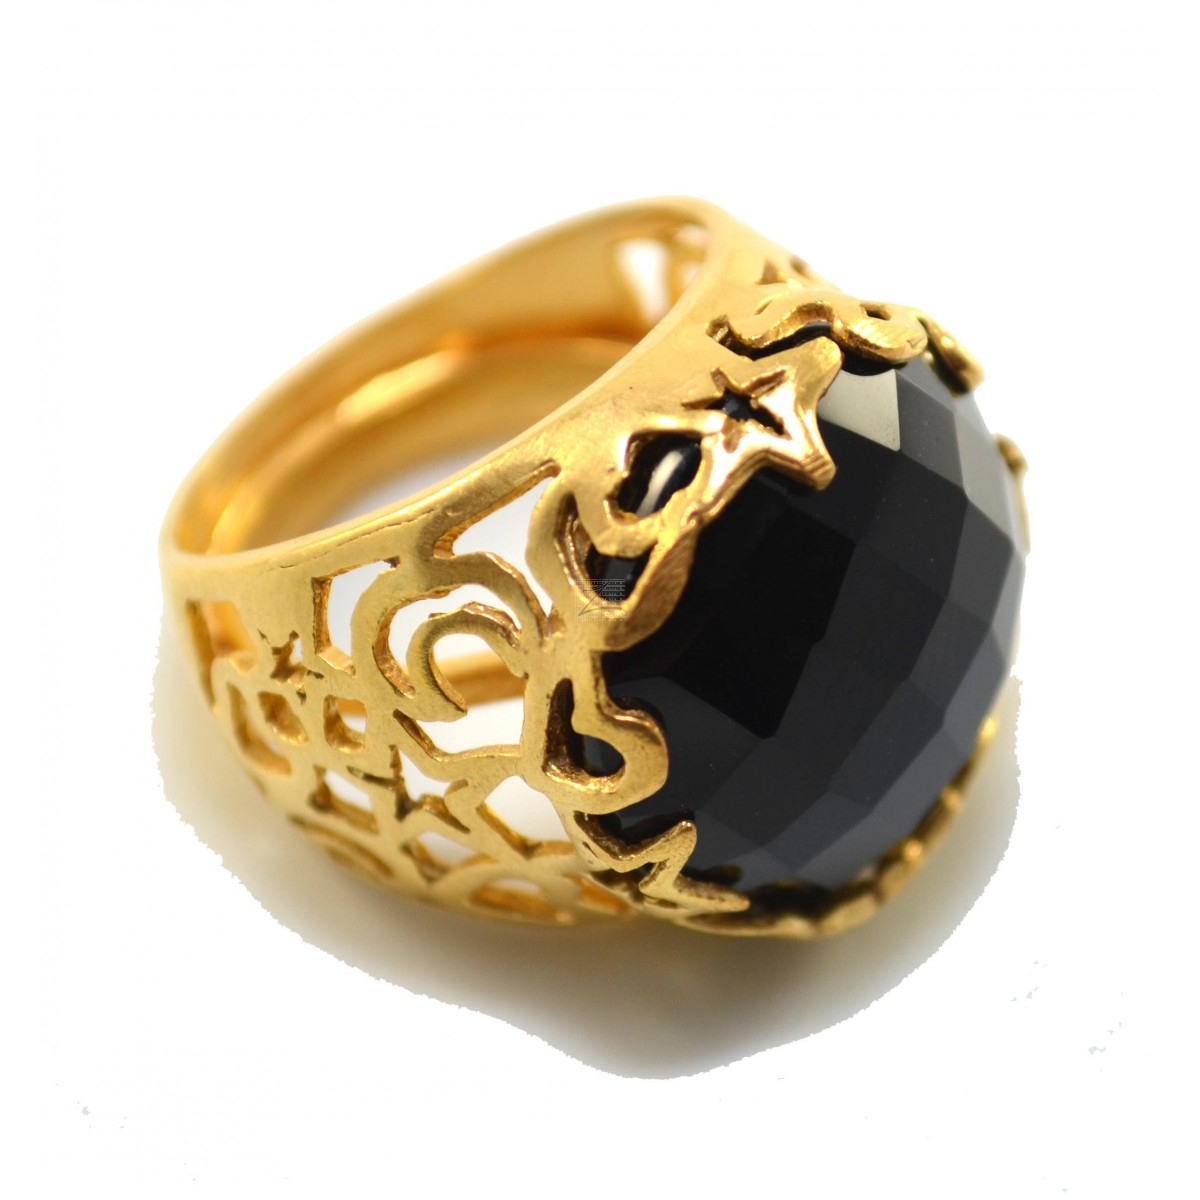 Black Multifaceted Onyx Stone Cocktail Ring With 24K Gold Plated For Most Recent Multifaceted Rings (View 6 of 25)